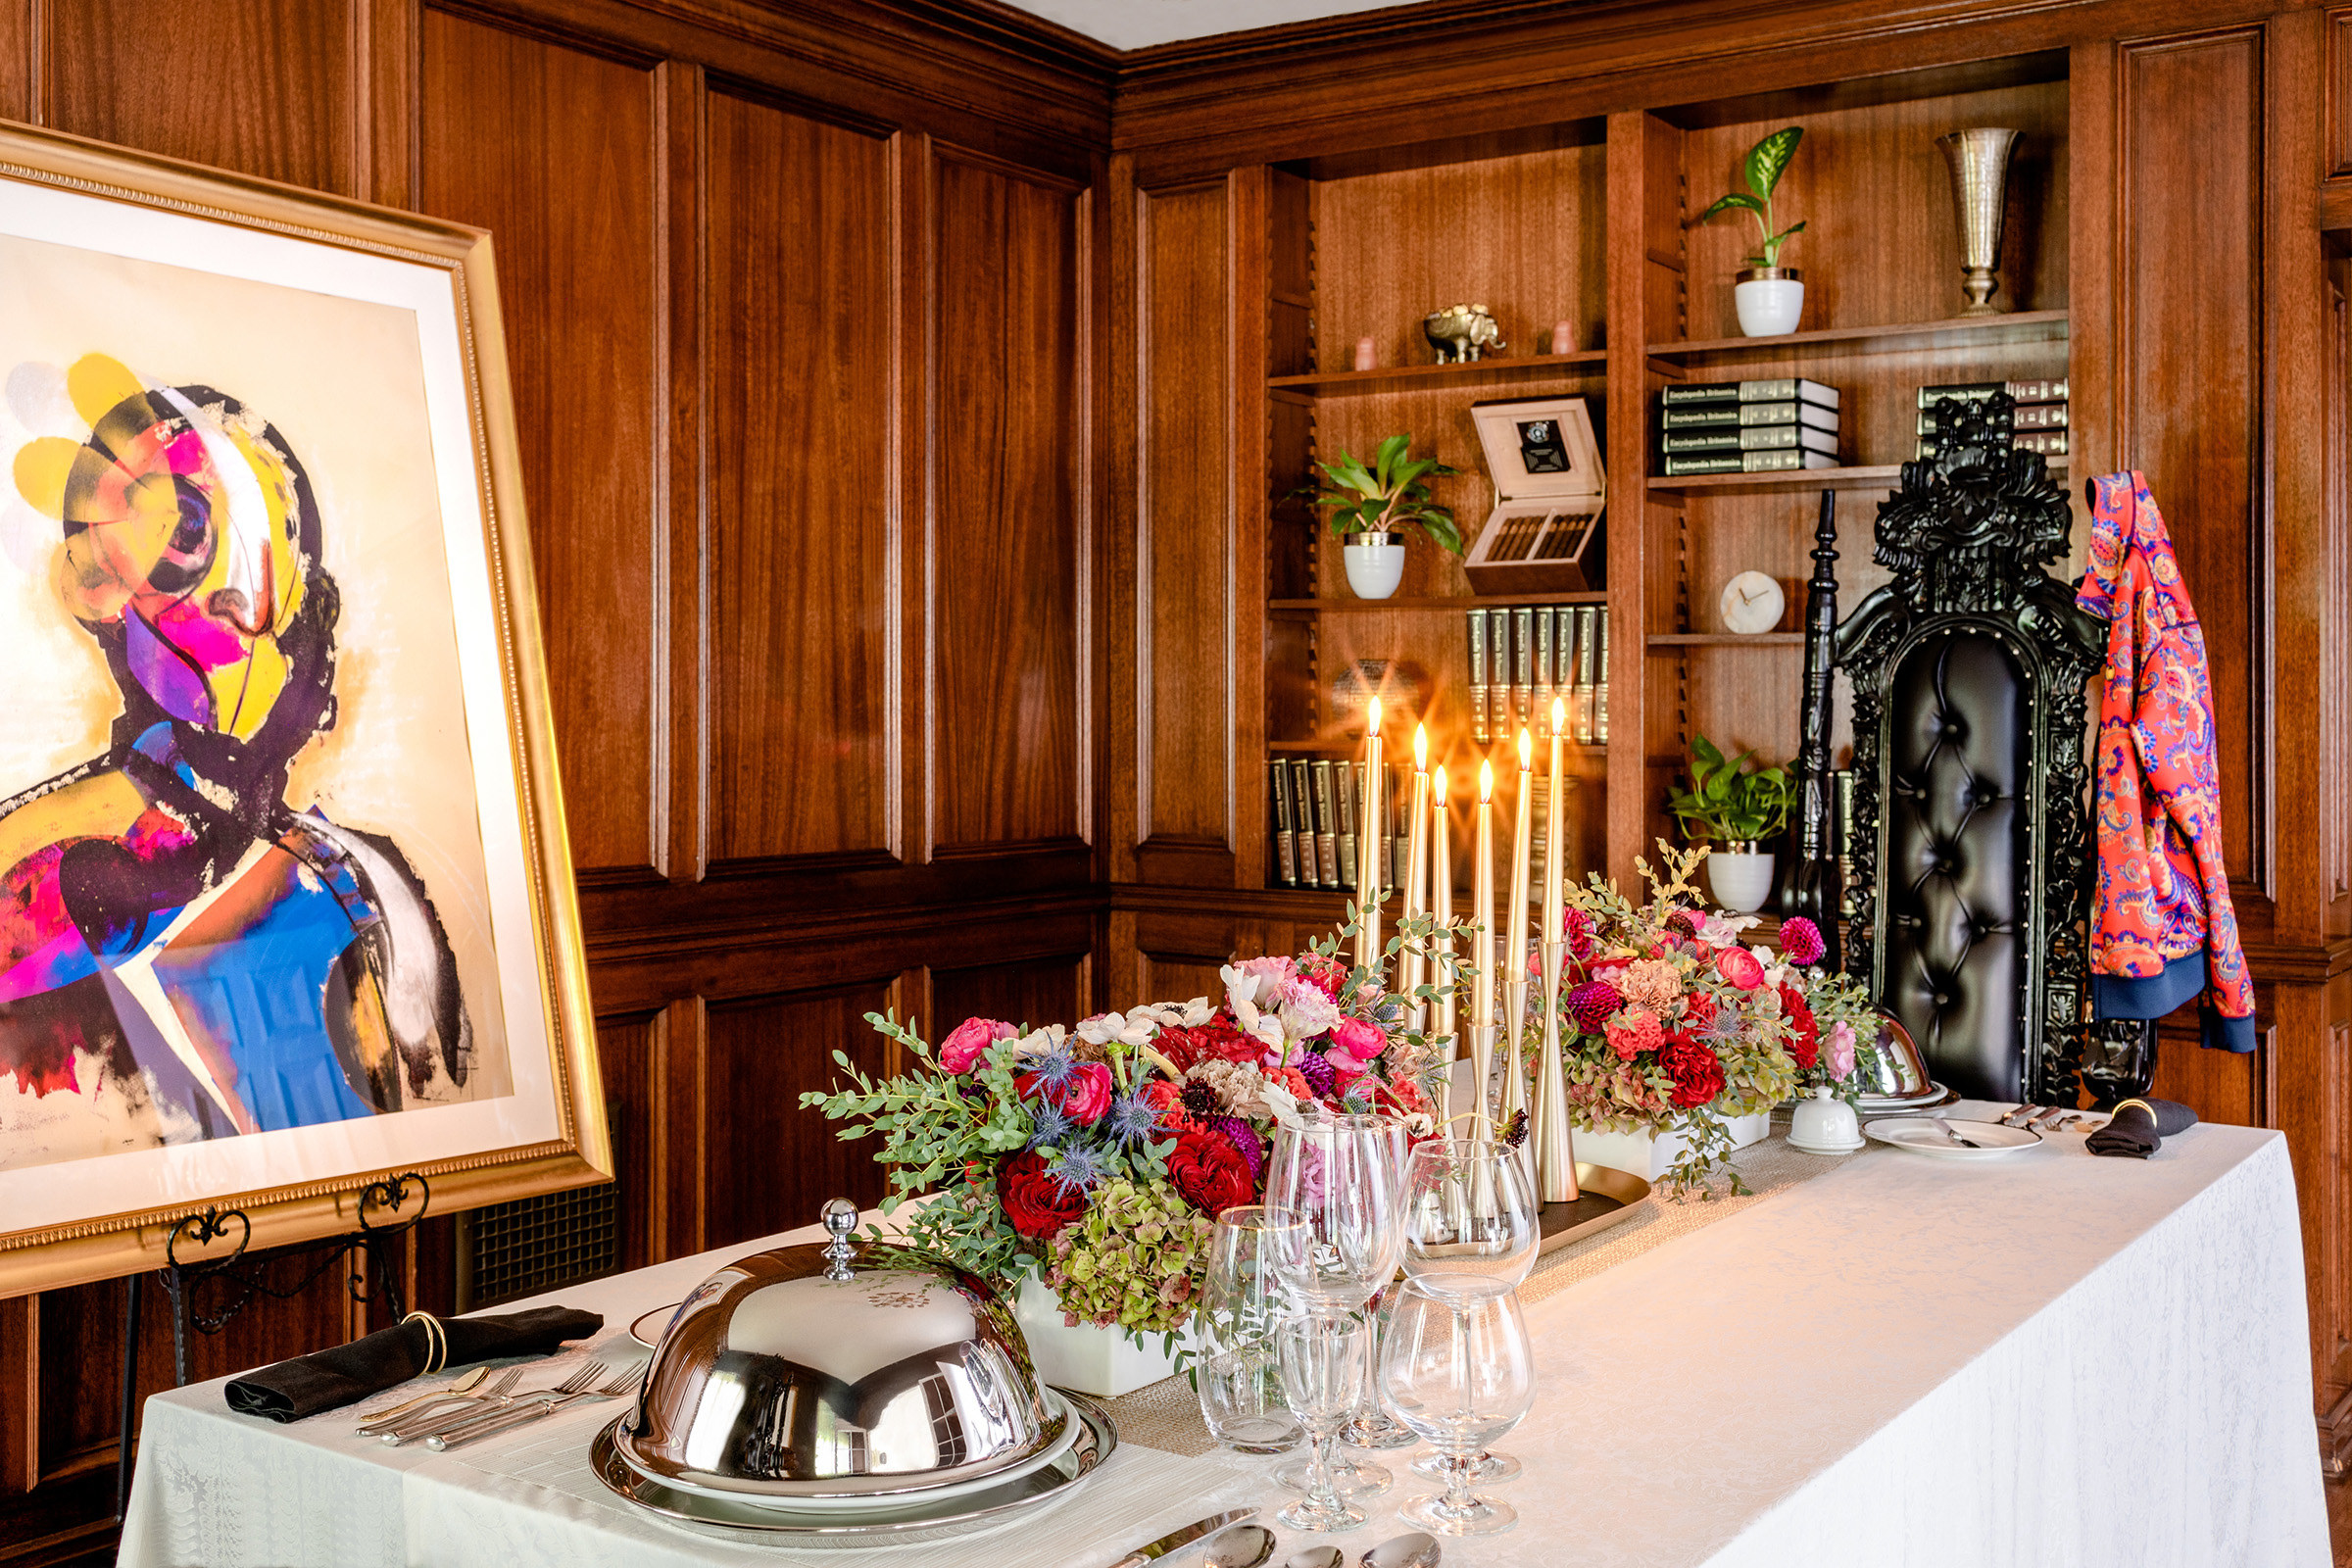 A tableclothed table topped with flowers, crystal glass, candles, and covered silver platters with an ornate, tall black chair at the head